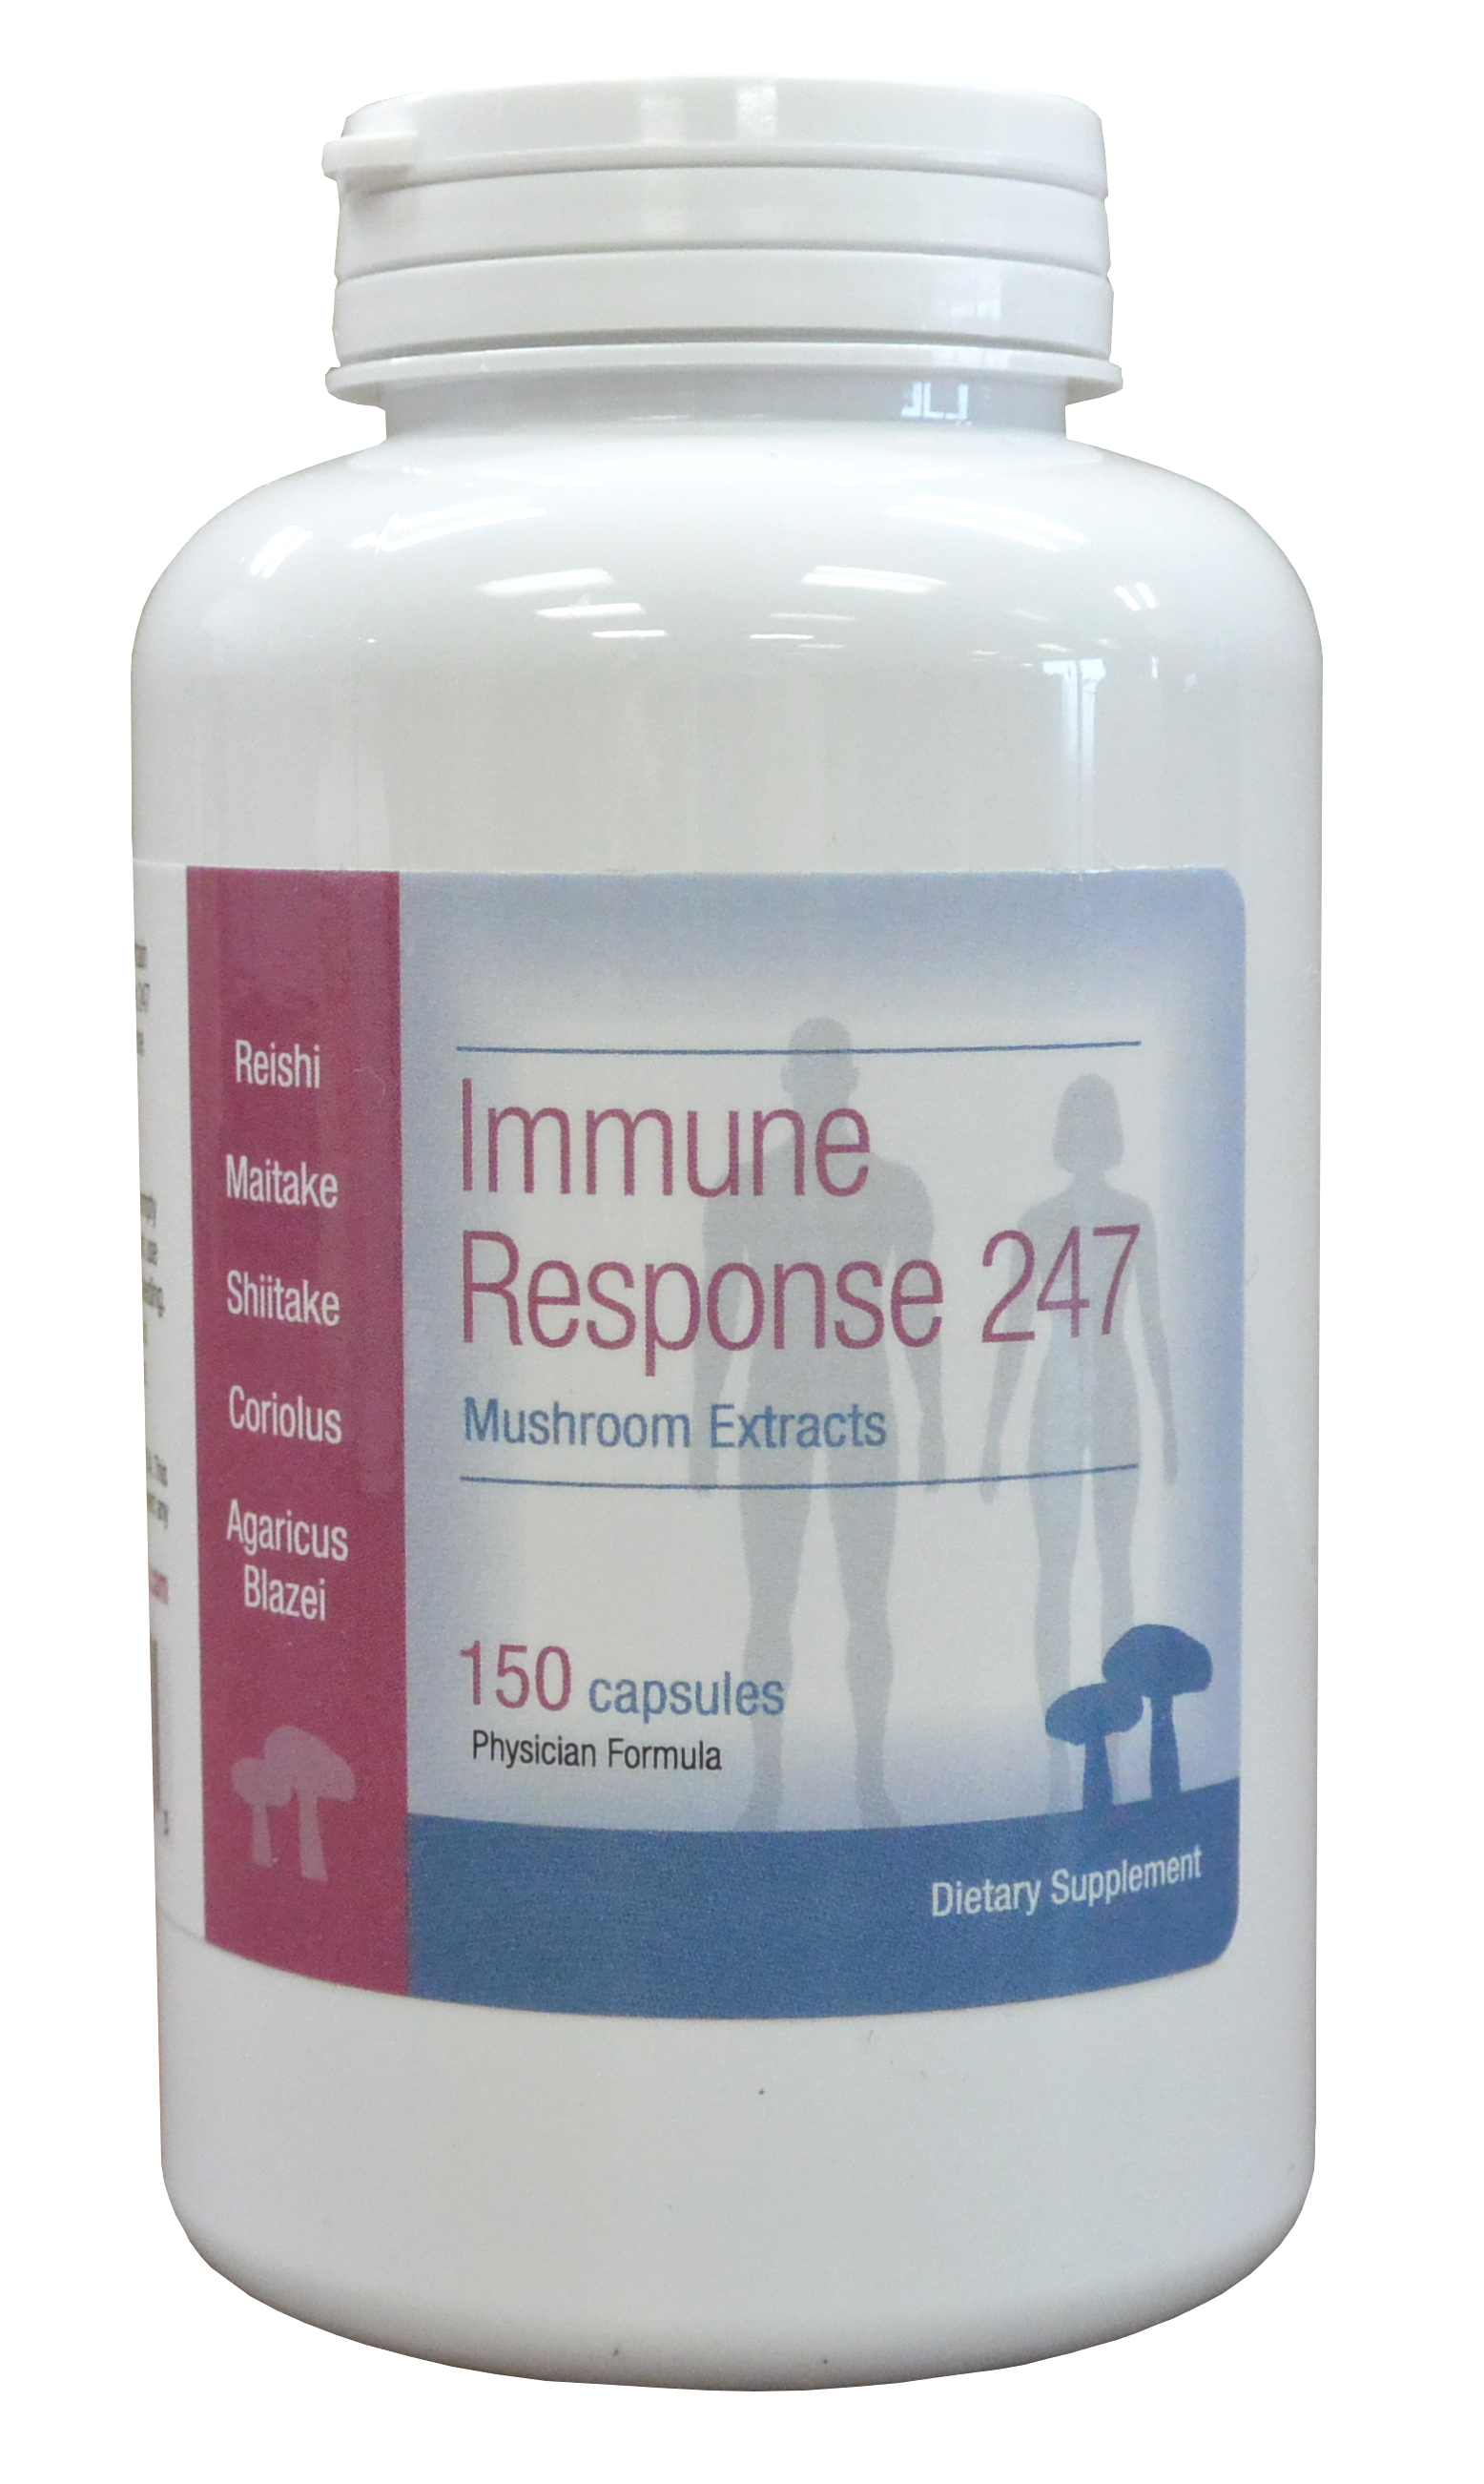 Immune 247, the best in mushroom extracts